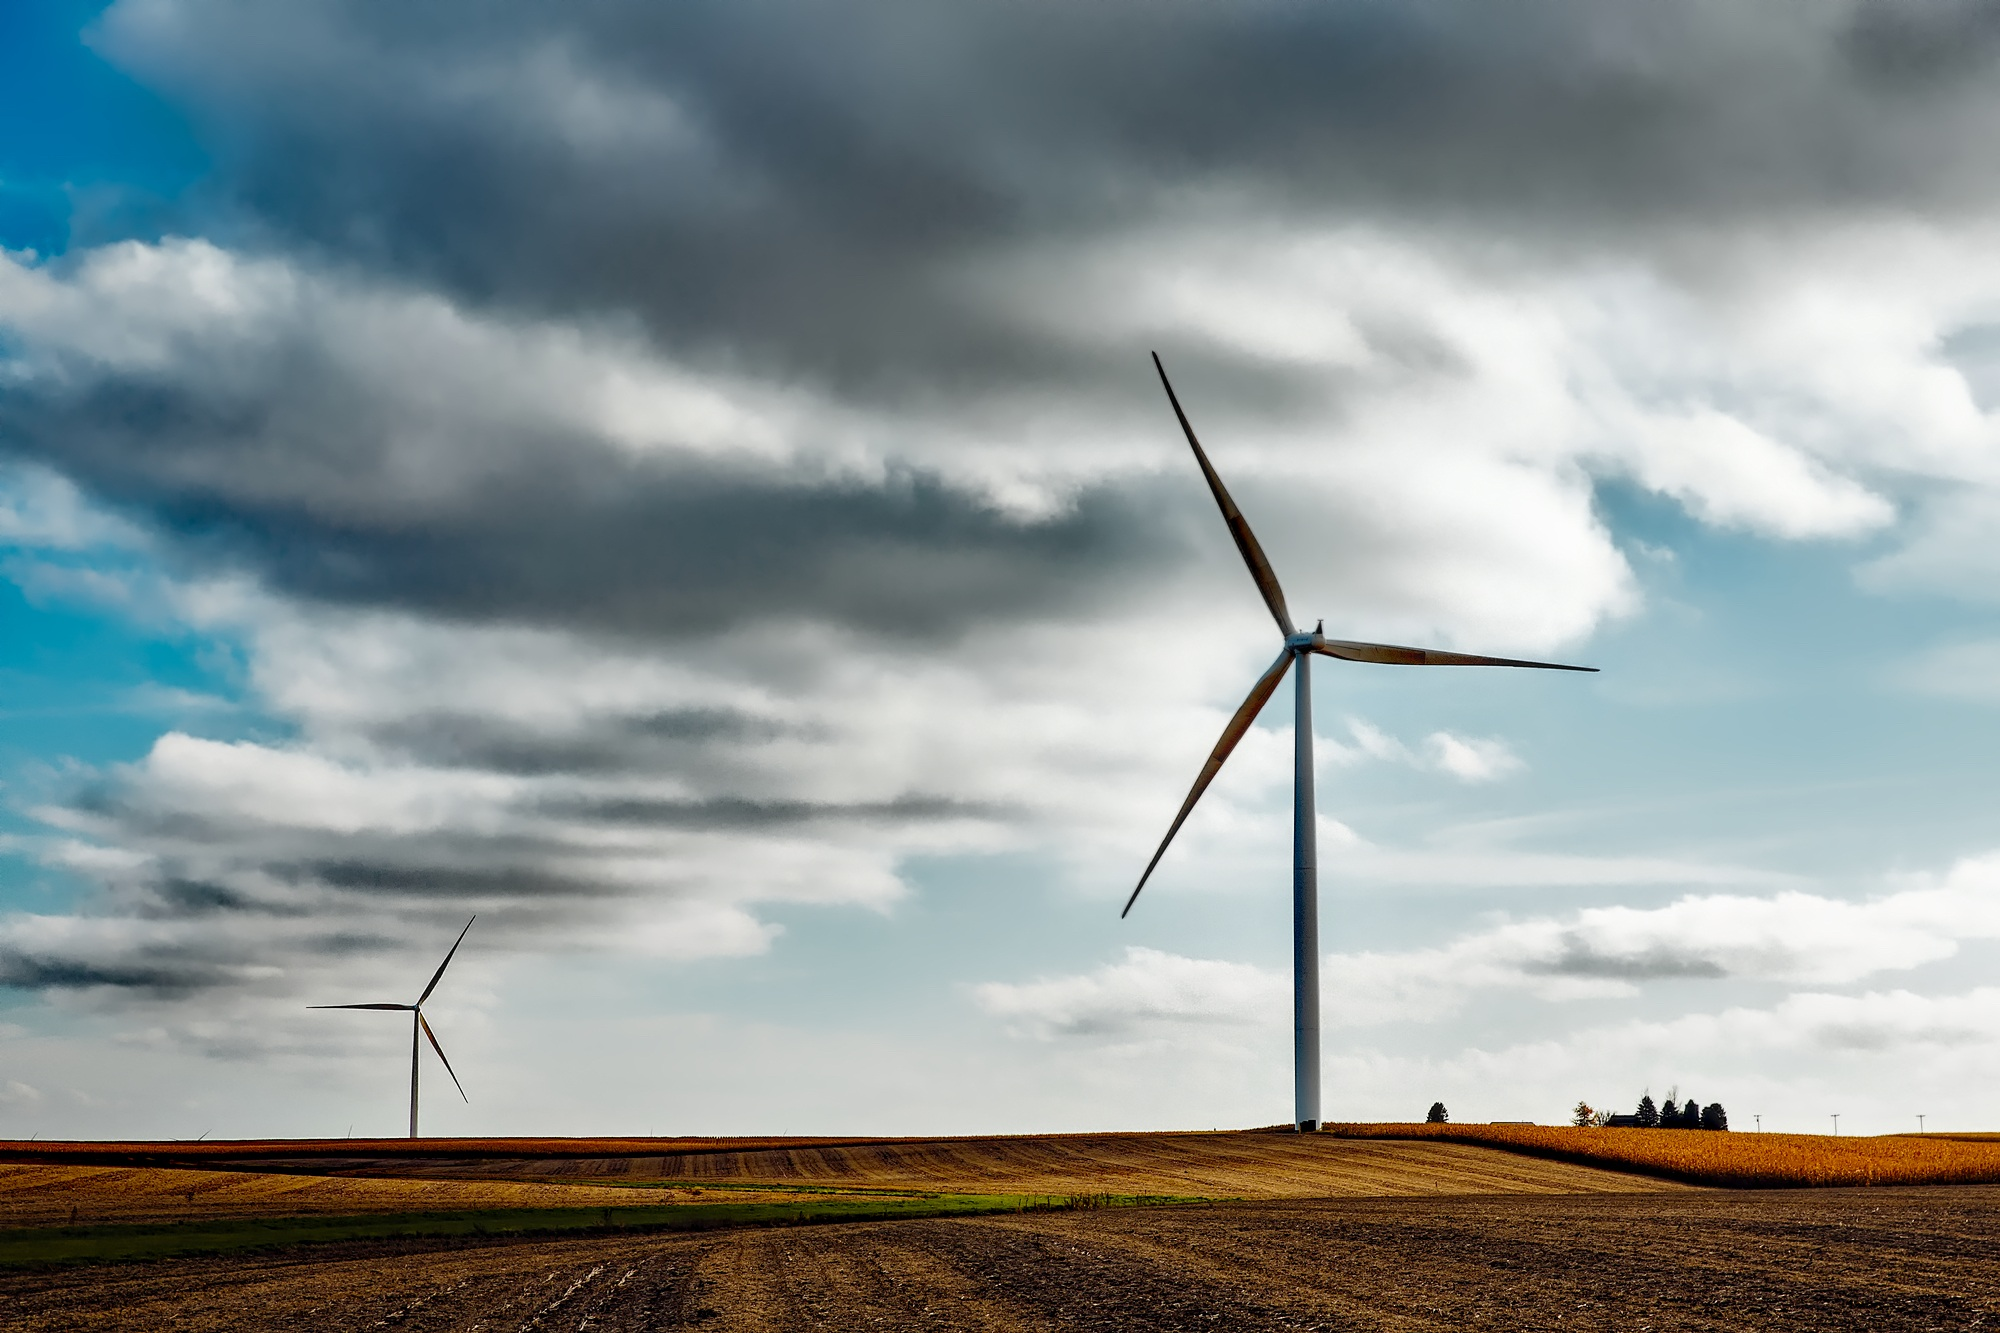 Two windmills stand in a field